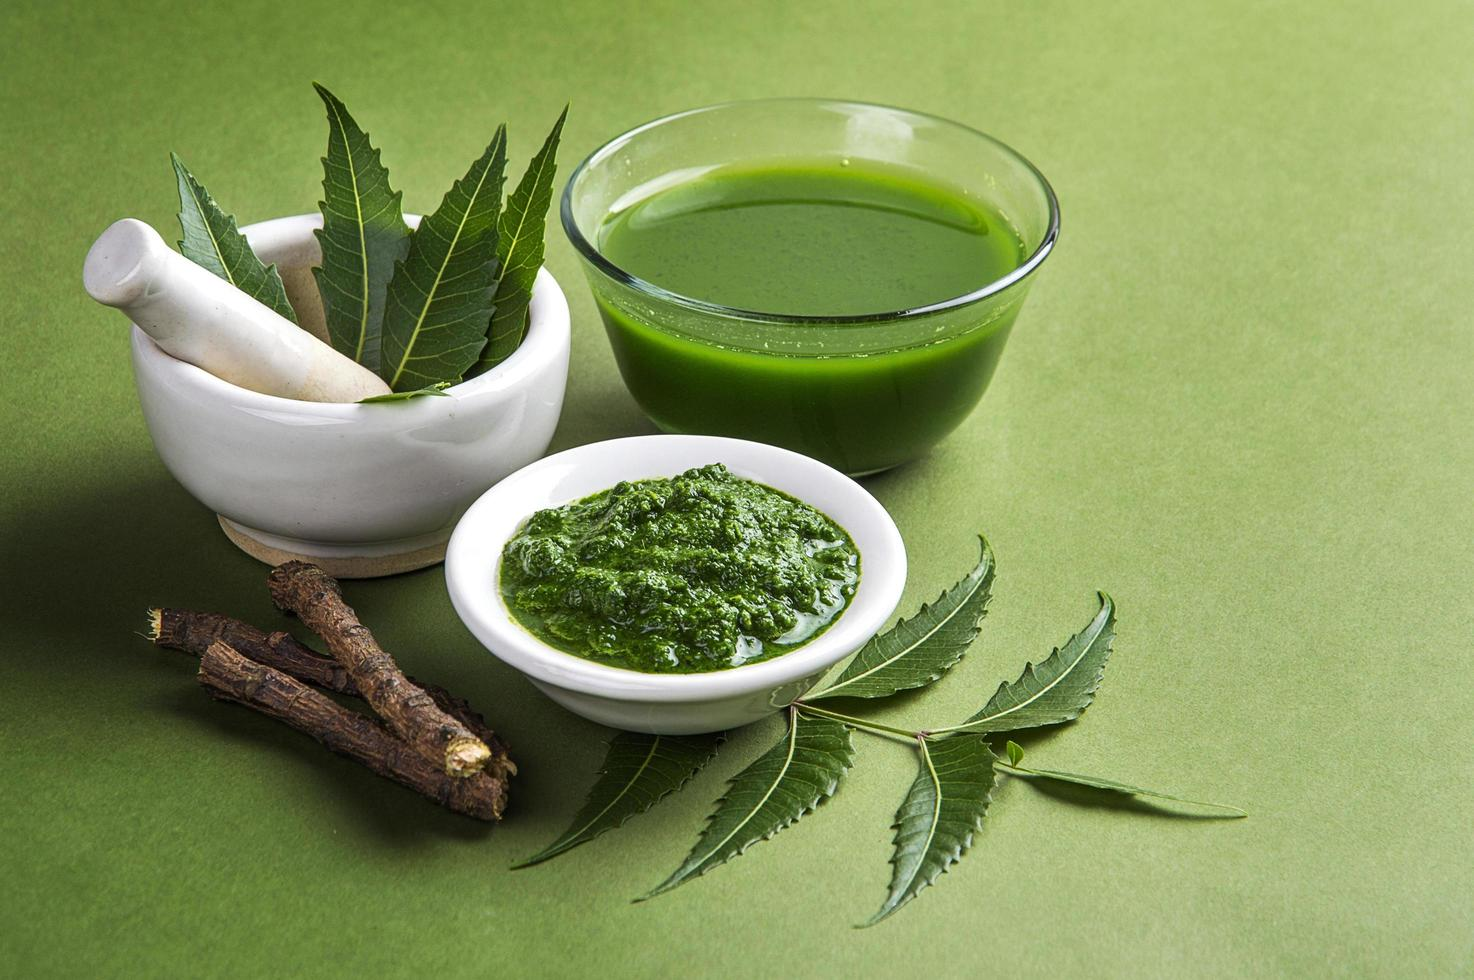 Benefits of Neem Plant (Uses of Neem Oil and Neem Leaves)